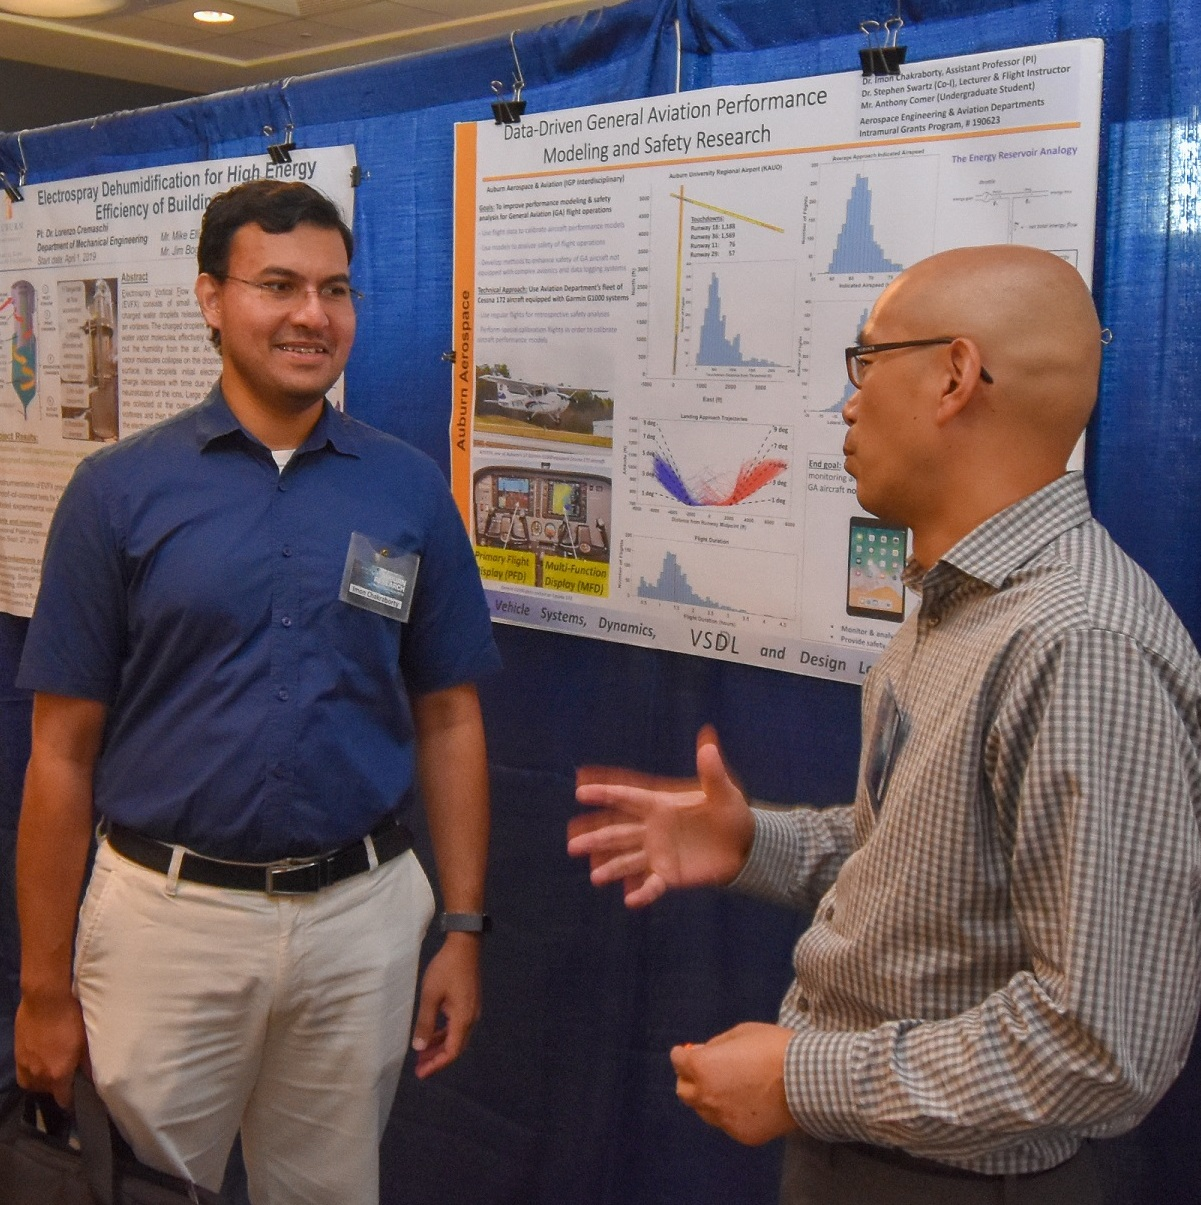 presenter at 2019 faculty symposium discusses research poster